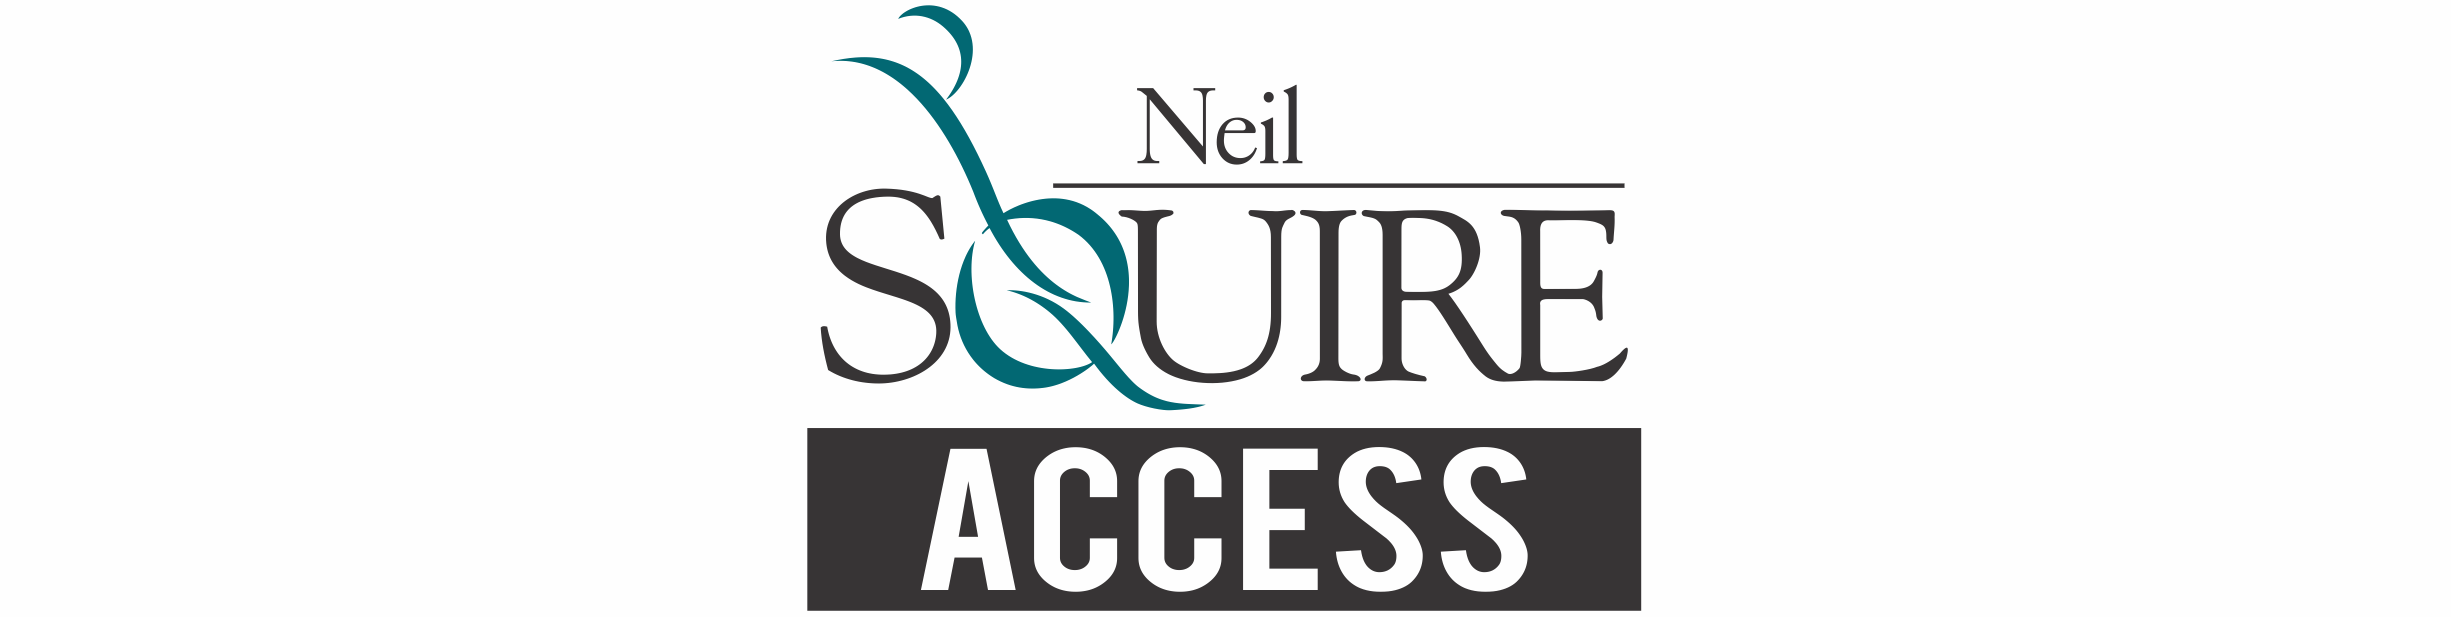 Neil Squire Access Logo